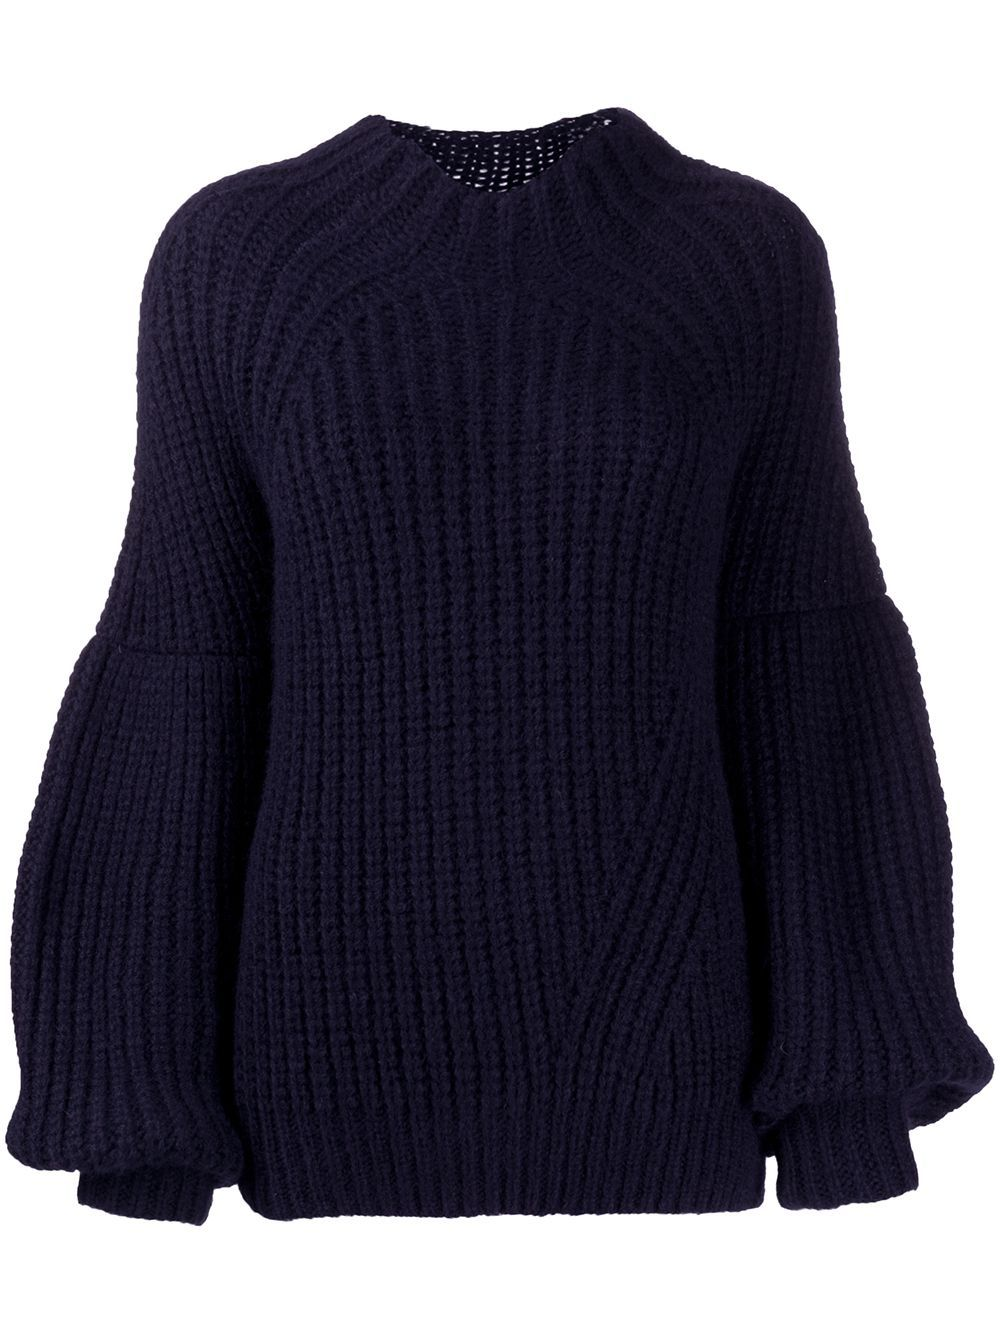 Ulla Johnson chunky knit jumper - Blue #chunkyknitjumper